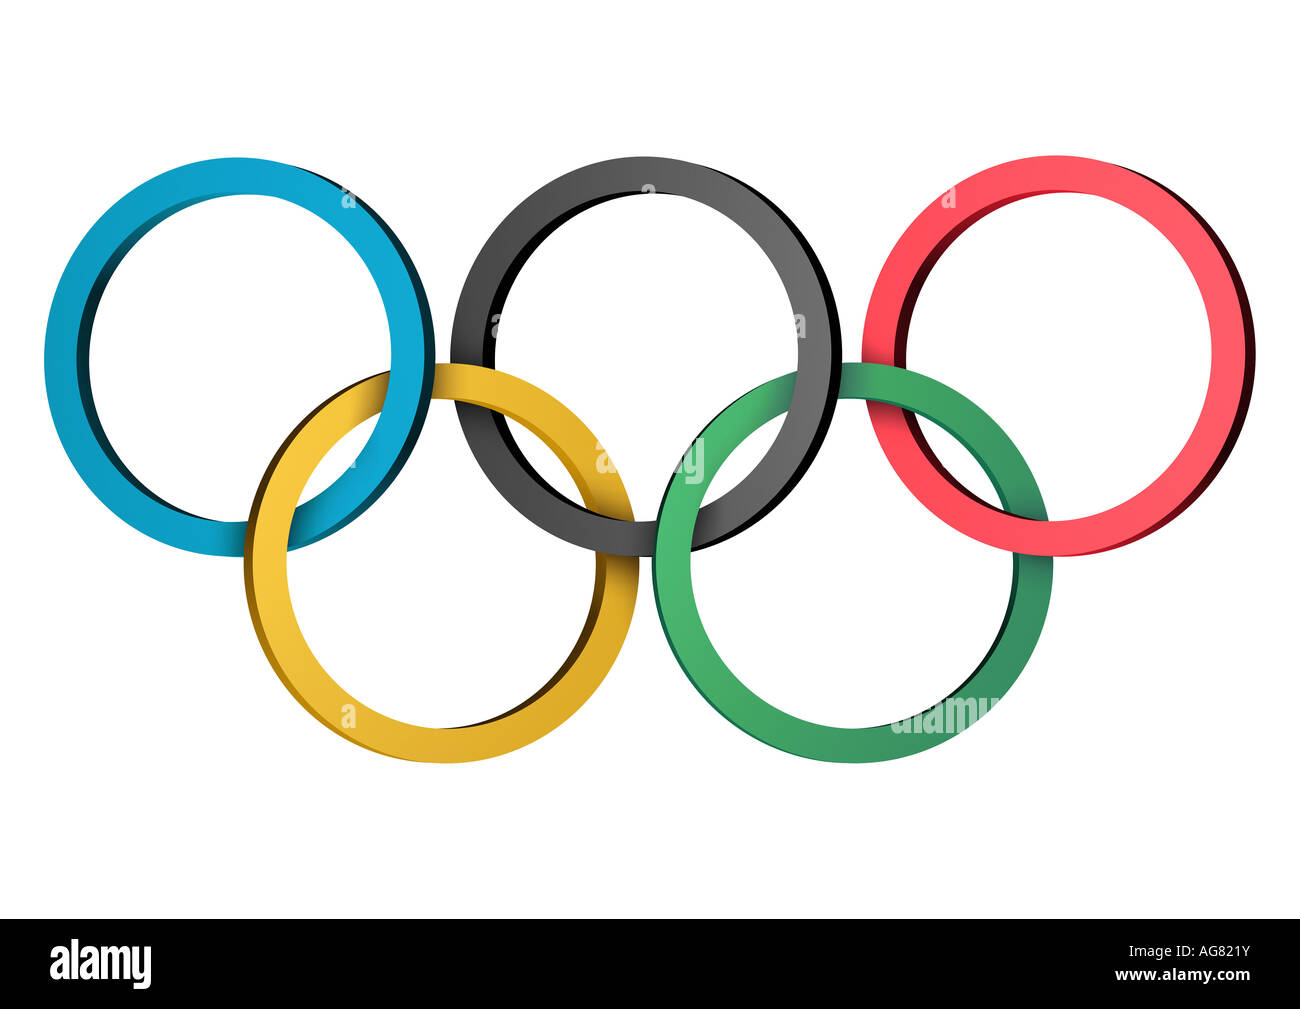 Olympische Ringe nur redaktionell verwendbar Olympic rings for editorial use only - Stock Image